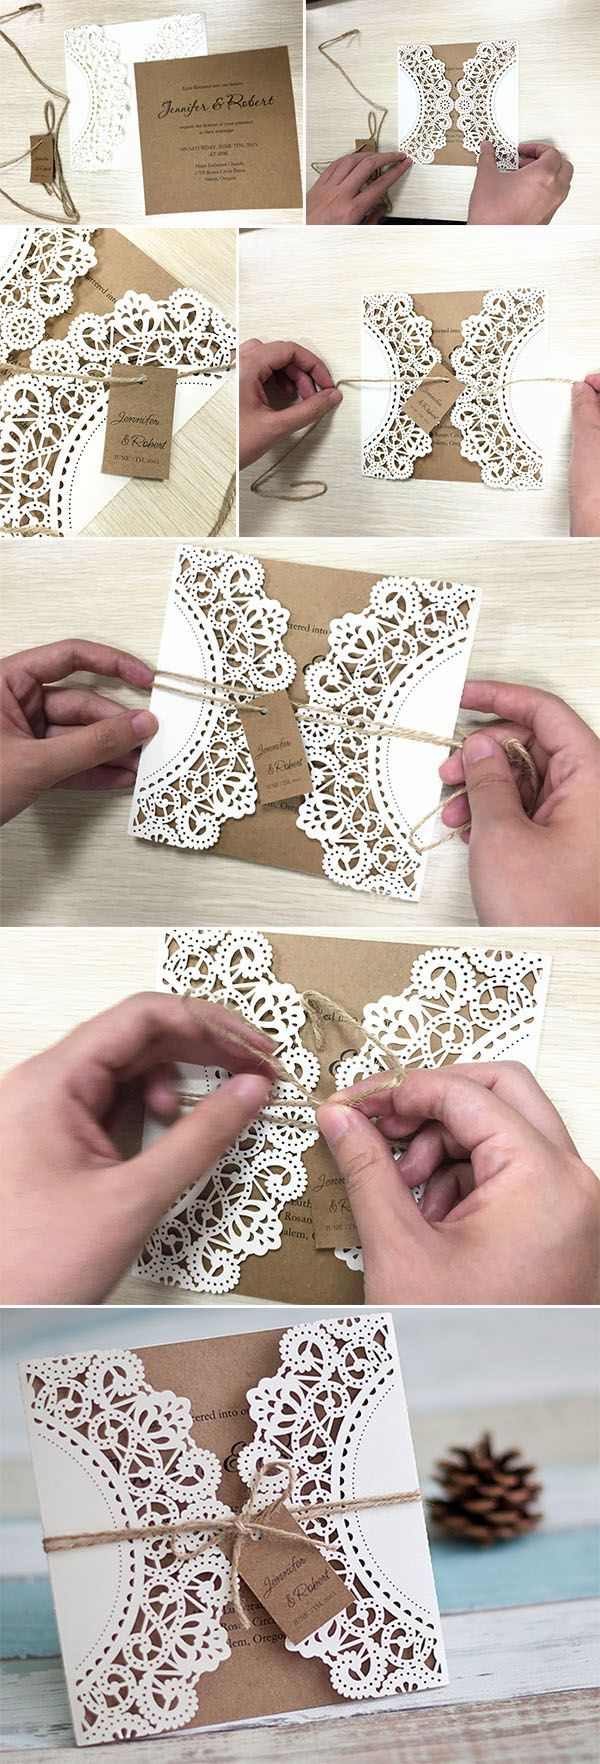 fashion sales assistant job description diy lace and burlap laser cut rustic wedding invitations for country wedding ideas